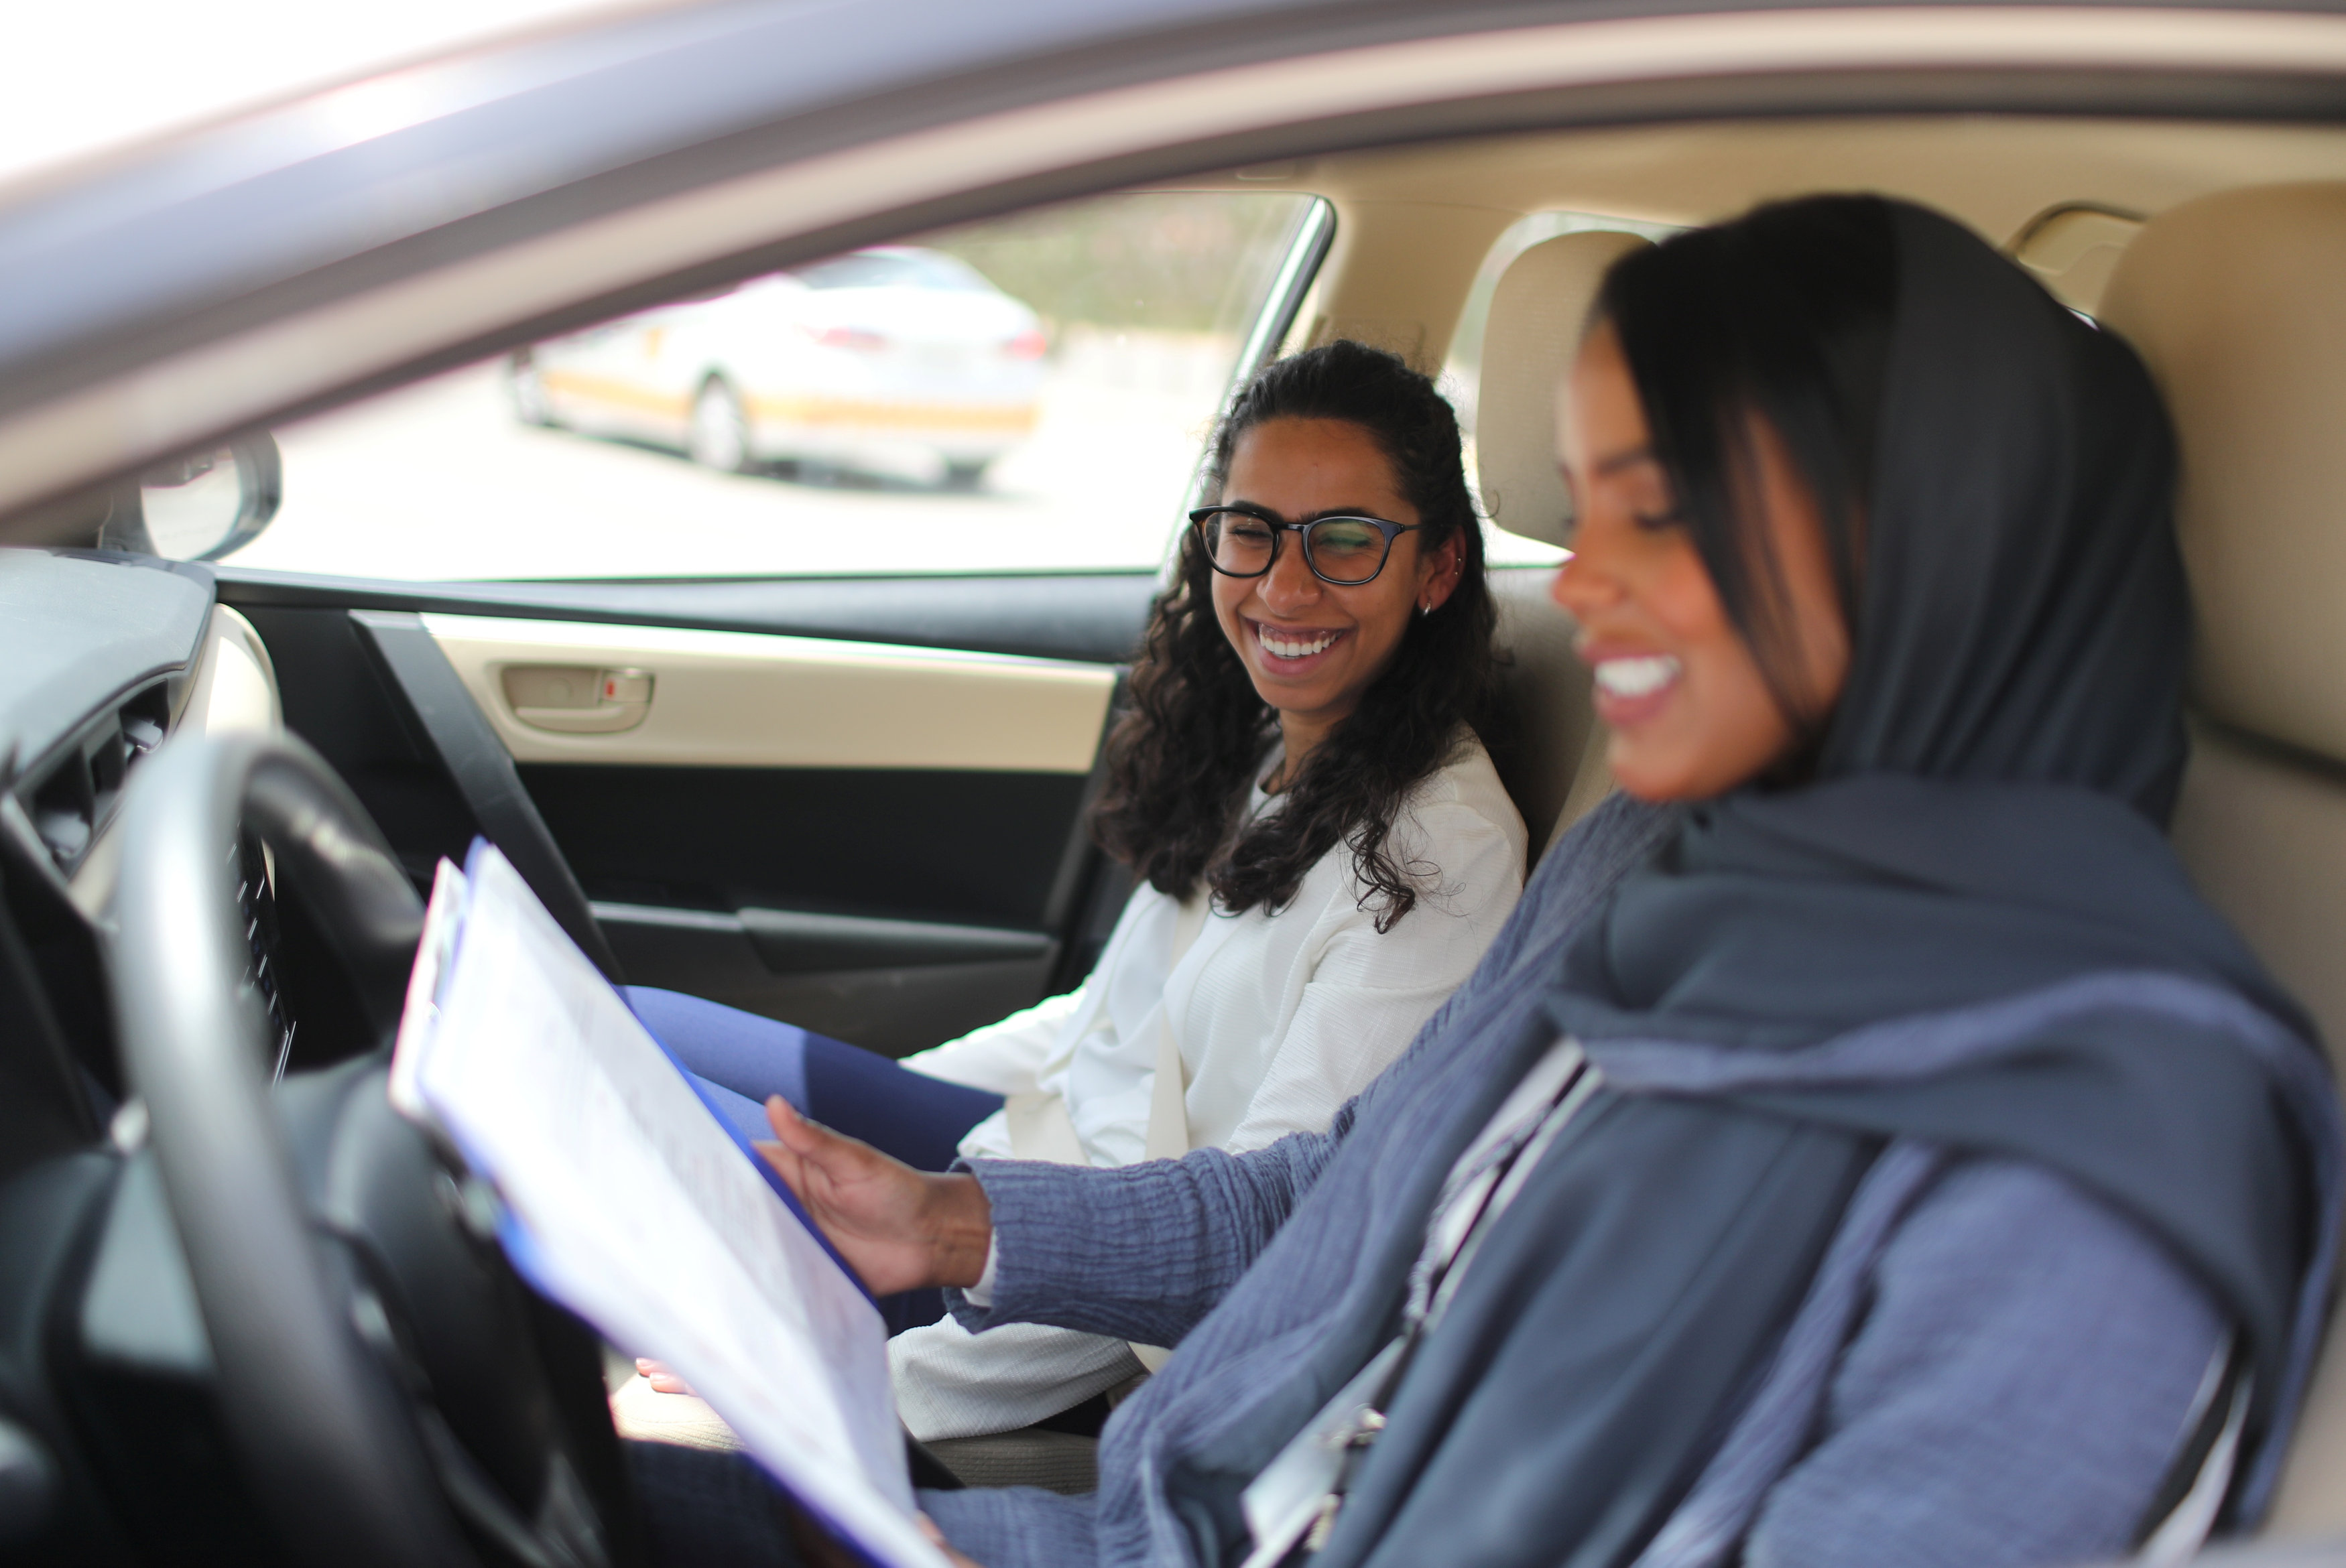 Driving instructor Ahlam al-Somali (R) reads instructions before getting ready to drive with trainee Maria al-Faraj at Saudi Aramco Driving Center in Dhahran, Saudi Arabia, June 6, 2018. REUTERS/Ahmed Jadallah